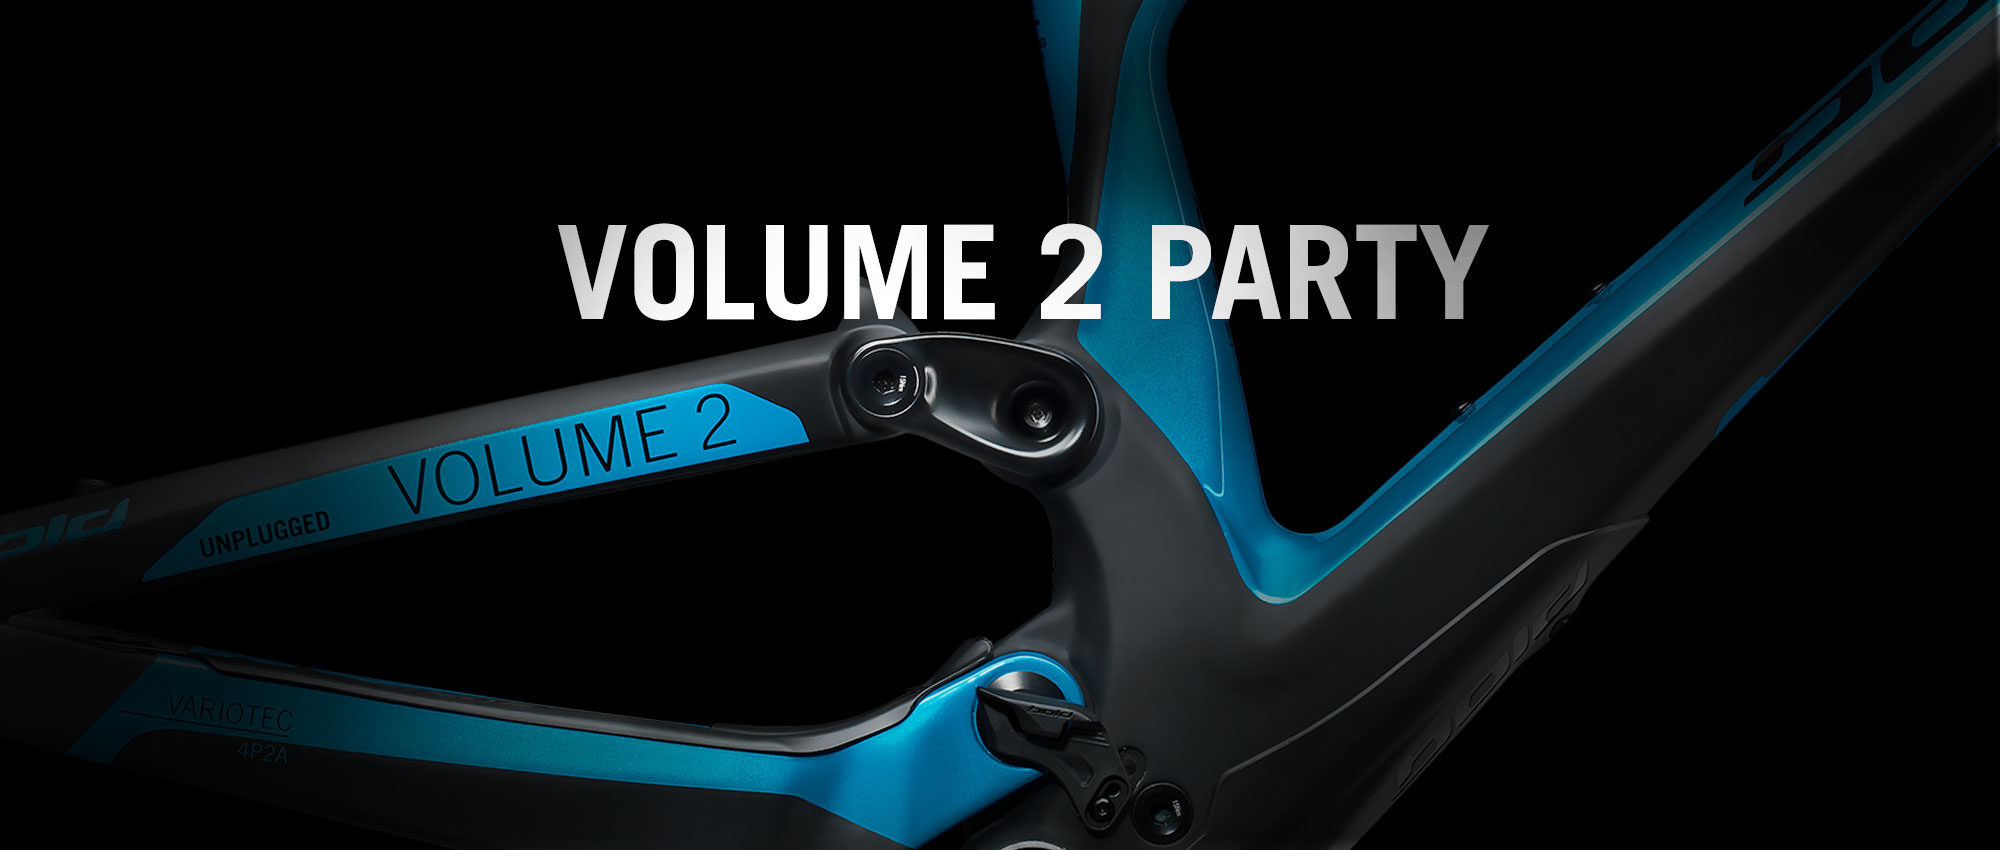 Bold Volume 2 Party